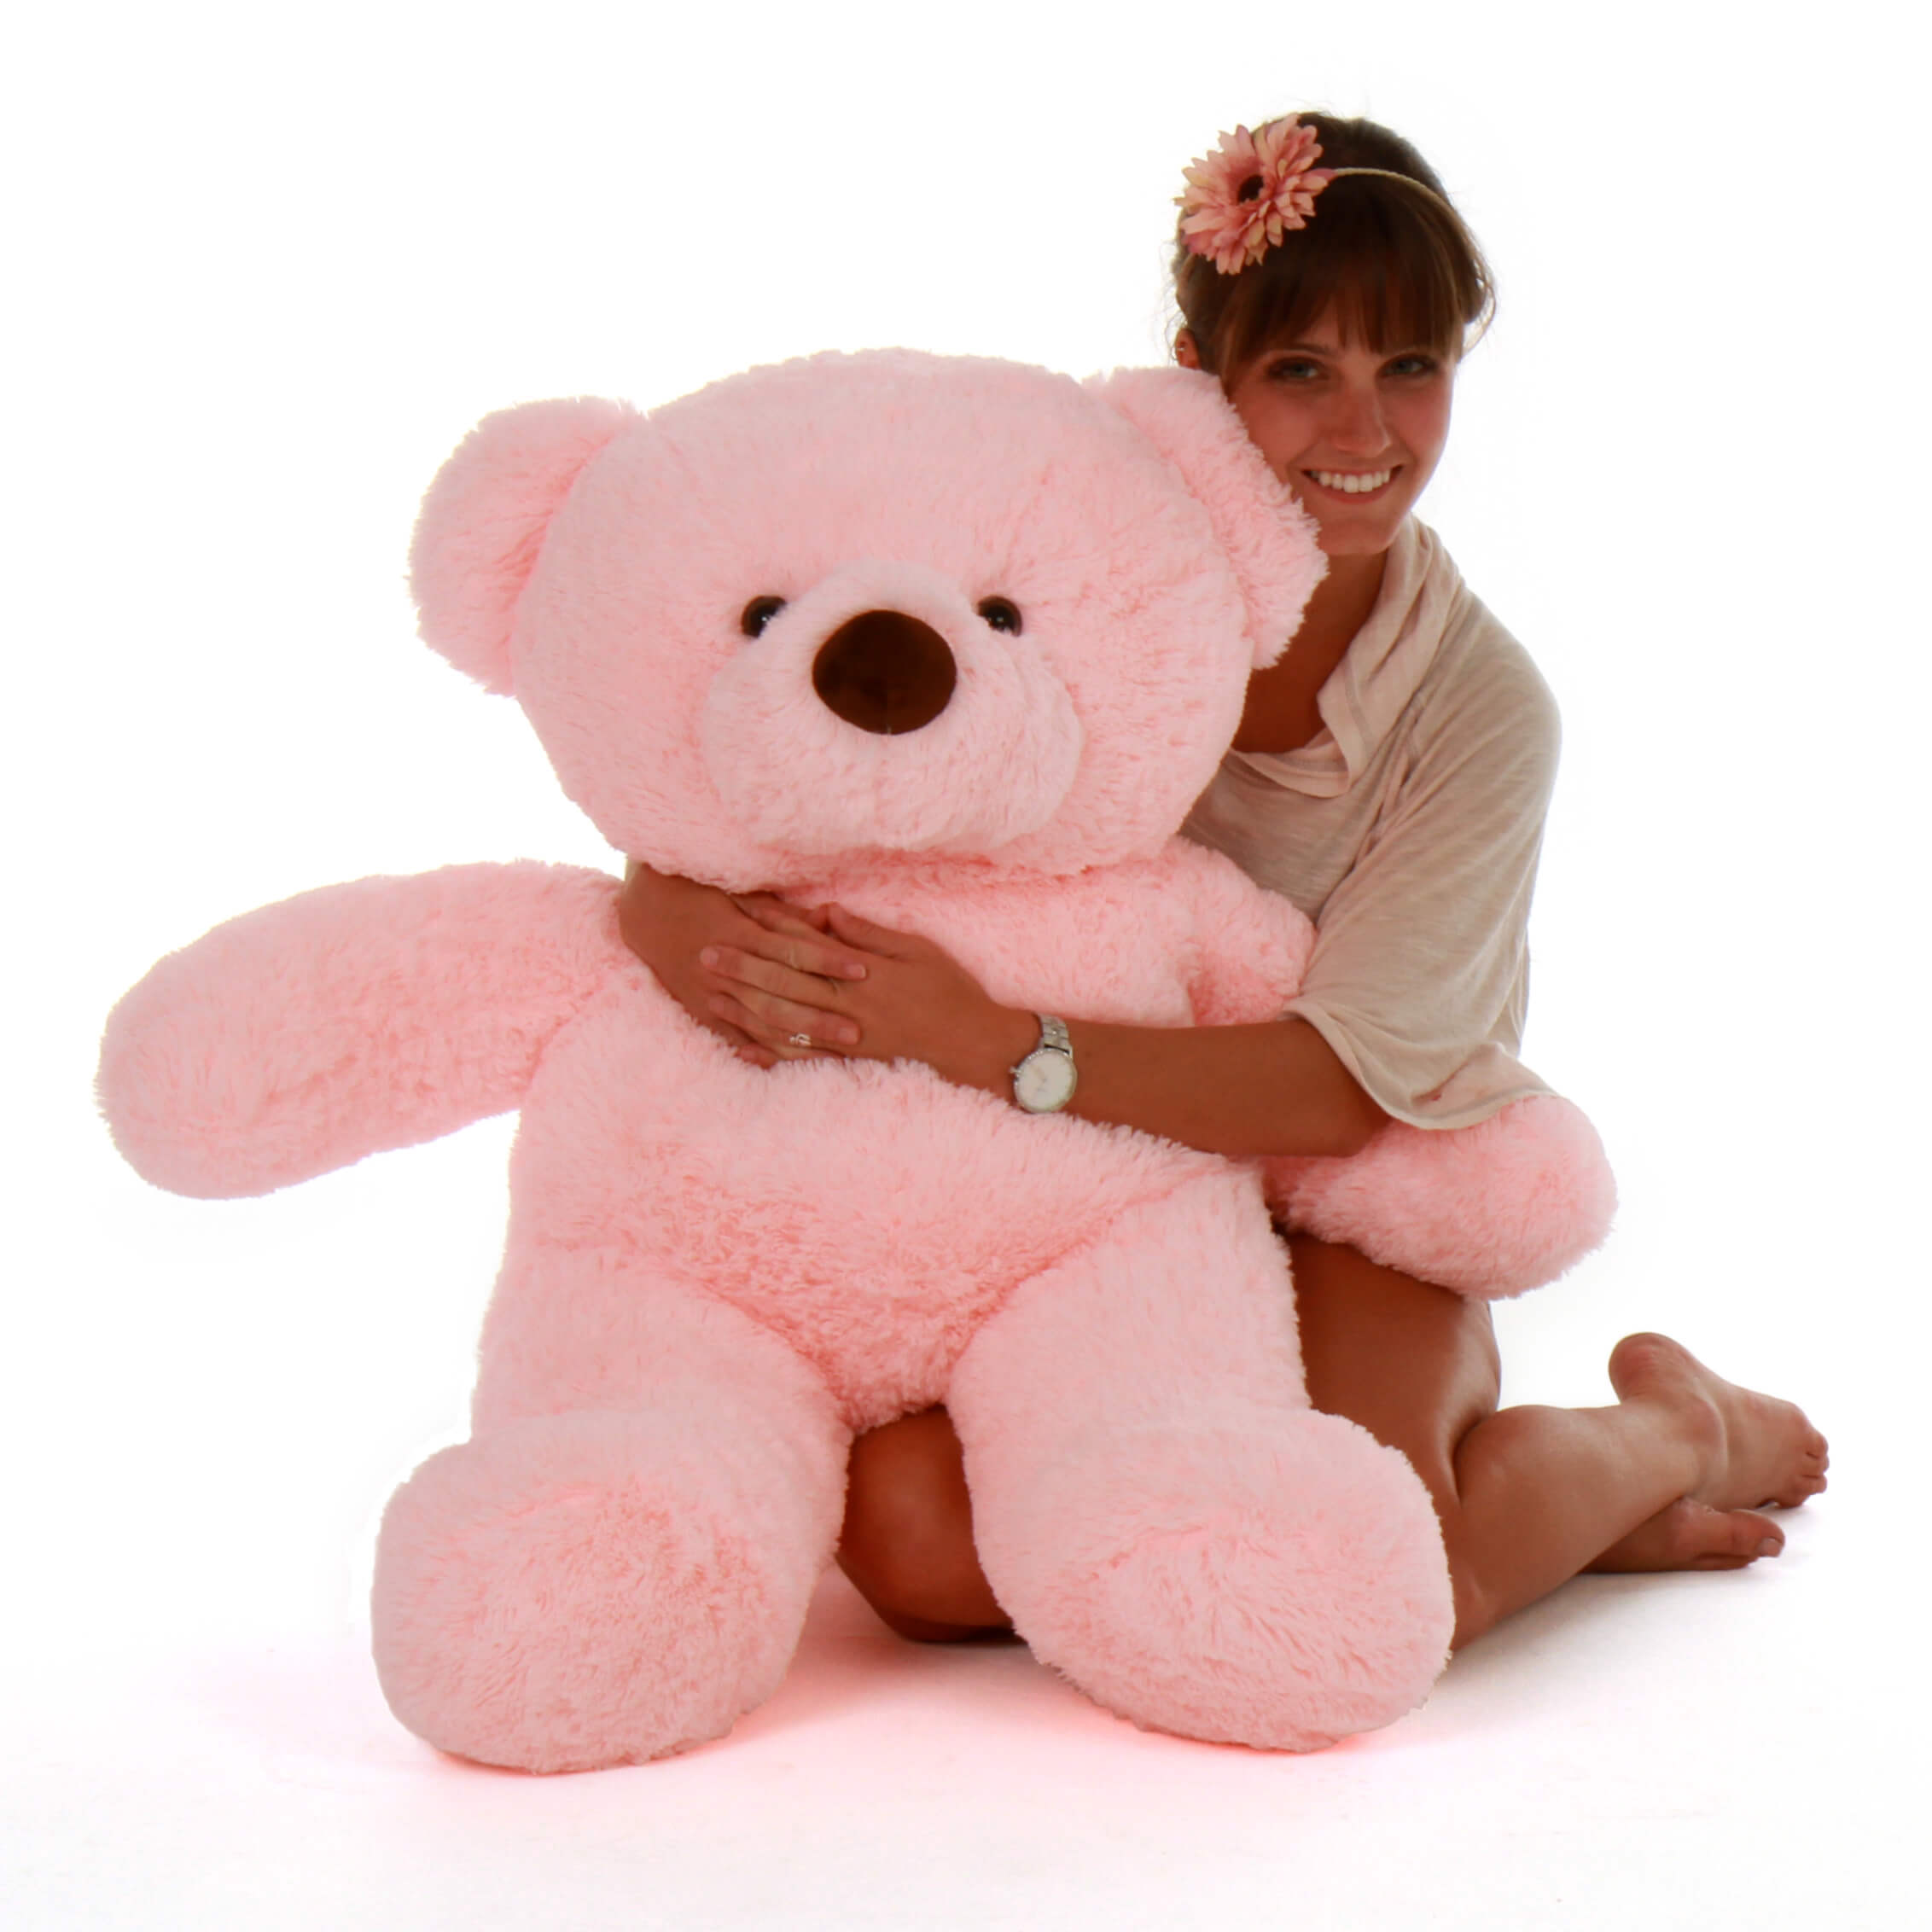 3ft-pink-big-stuffed-teddy-bear-gigi-chubs-best-gift-1.jpg